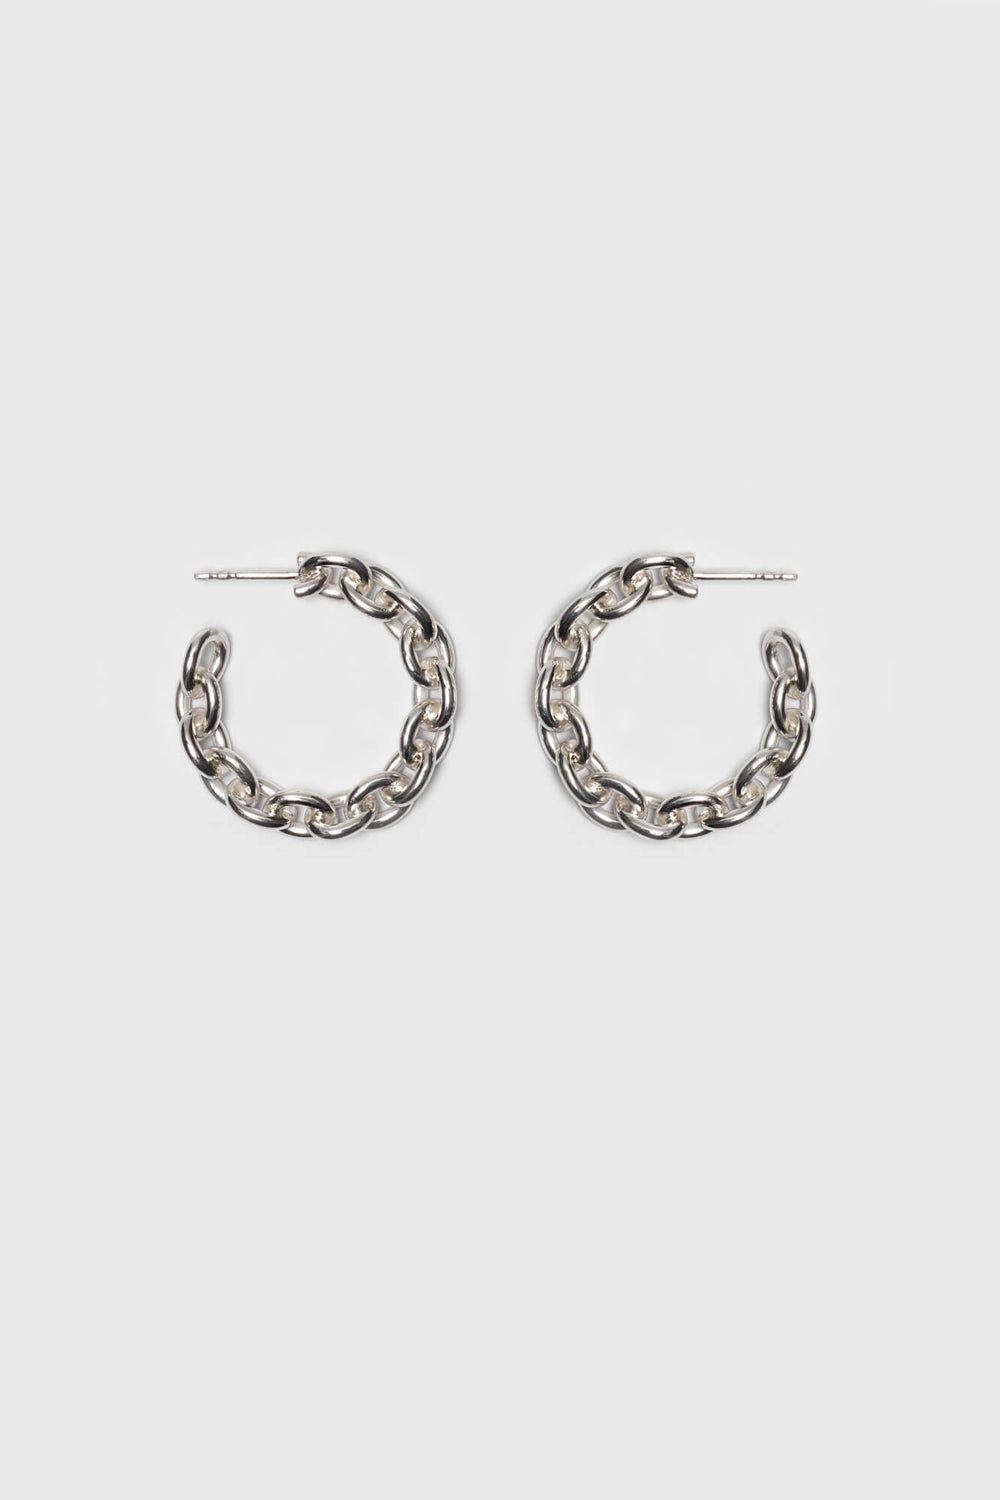 Link chain earrings with a high gloss finish. Fine jewelry handmade in Berlin.